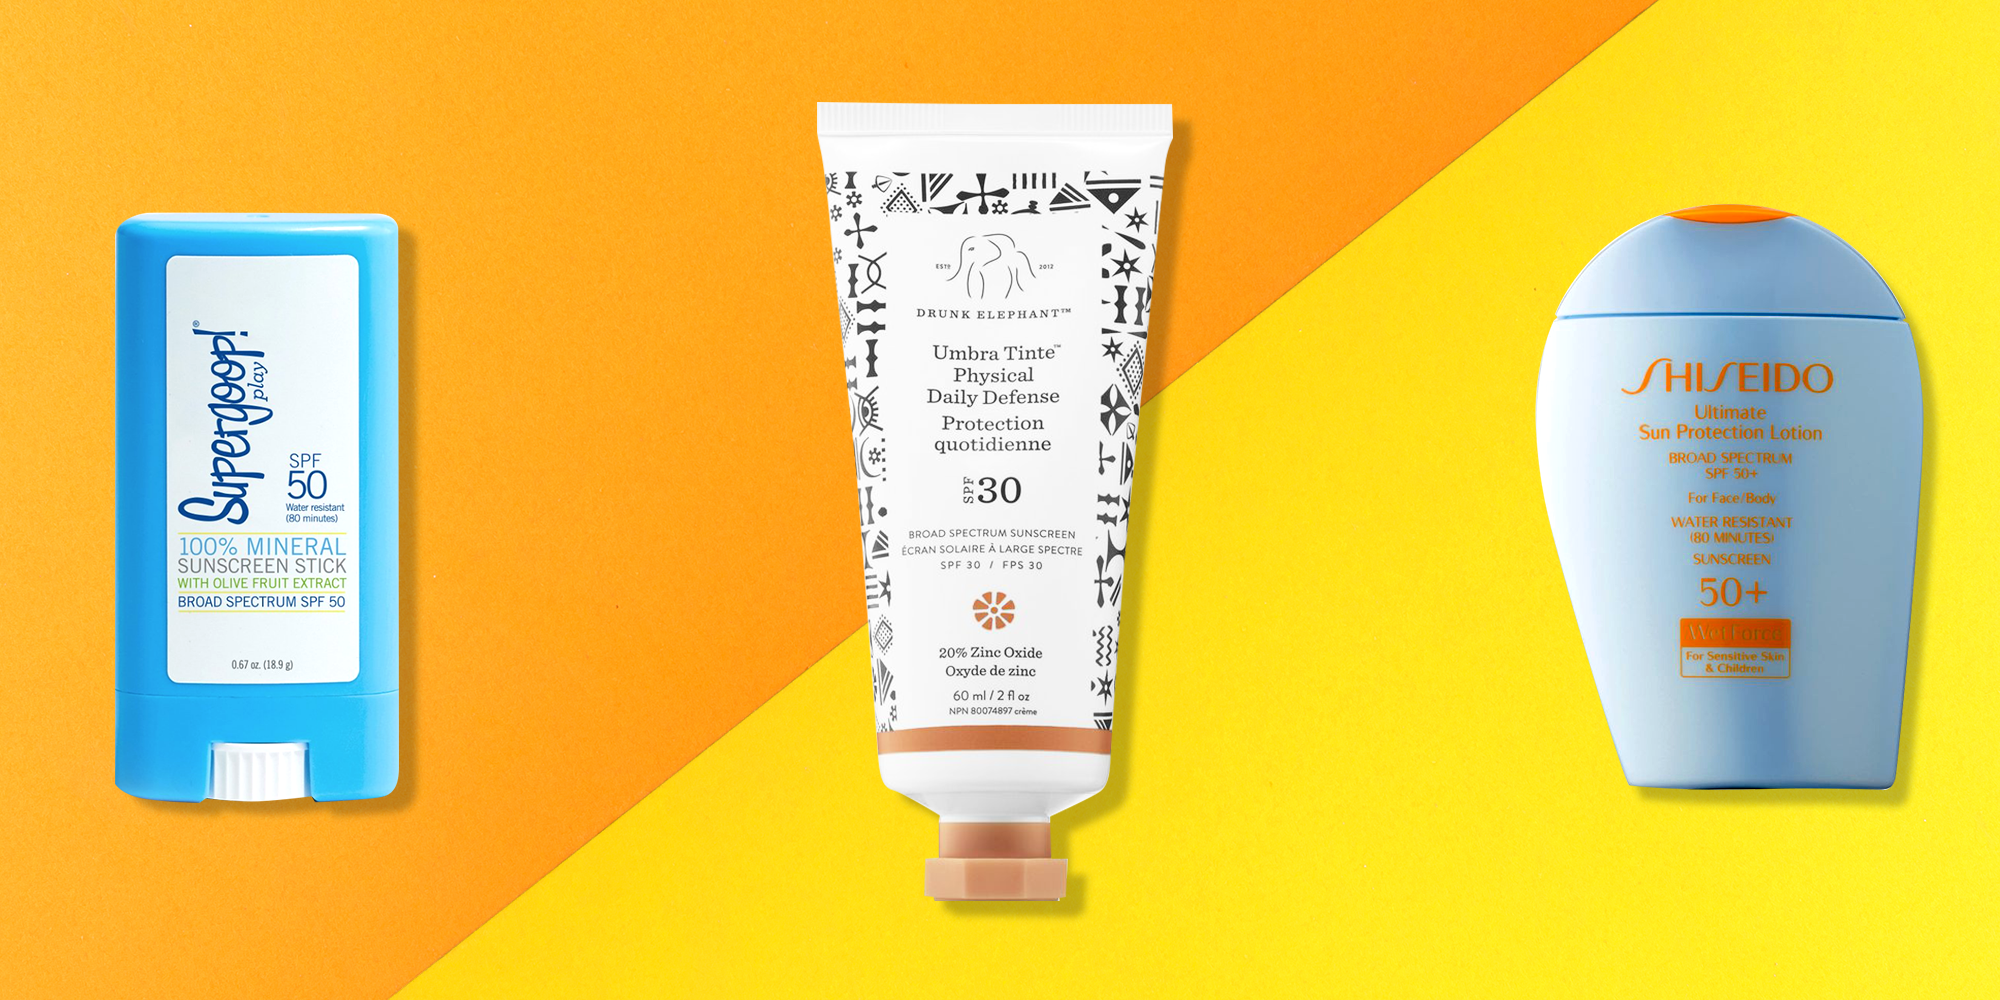 The 12 Best Natural Sunscreens For Every Skin Type